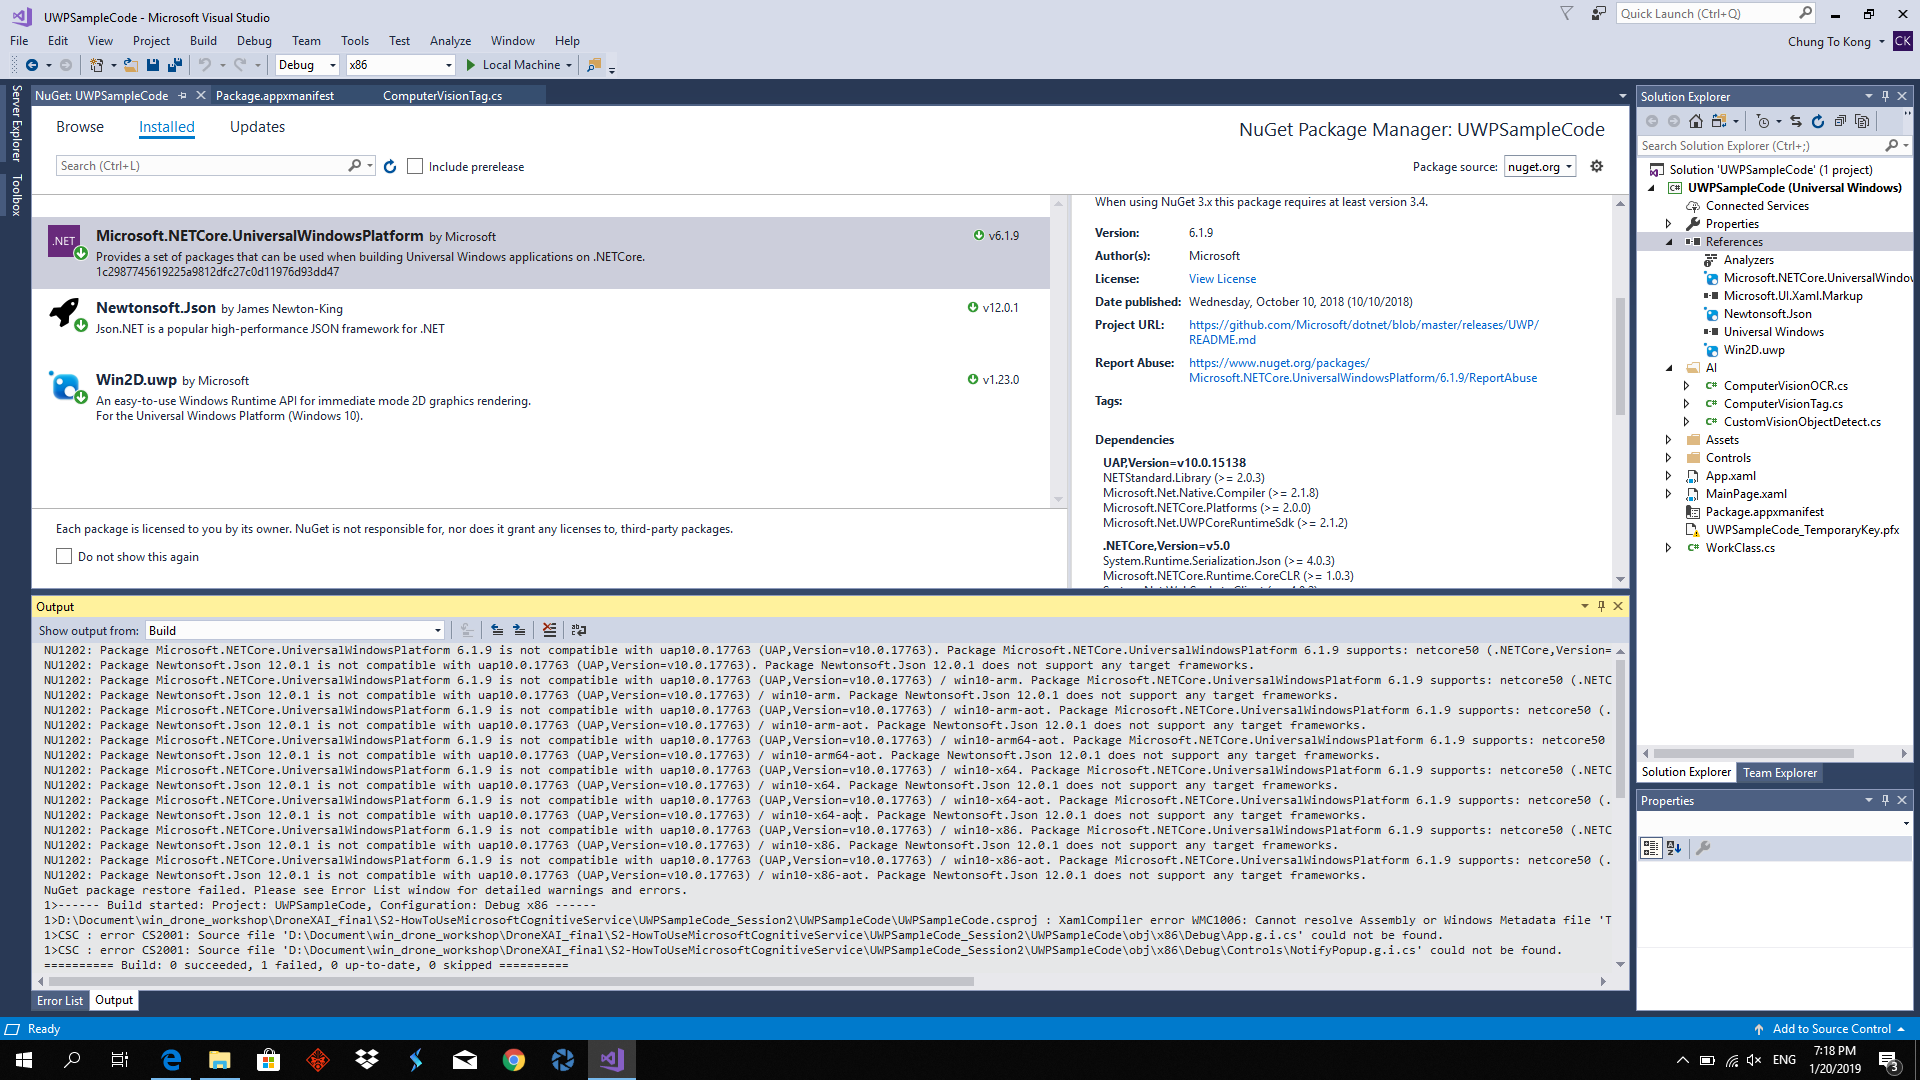 Developers - 6 1 9 is not compatible with uap10 0 17763 -